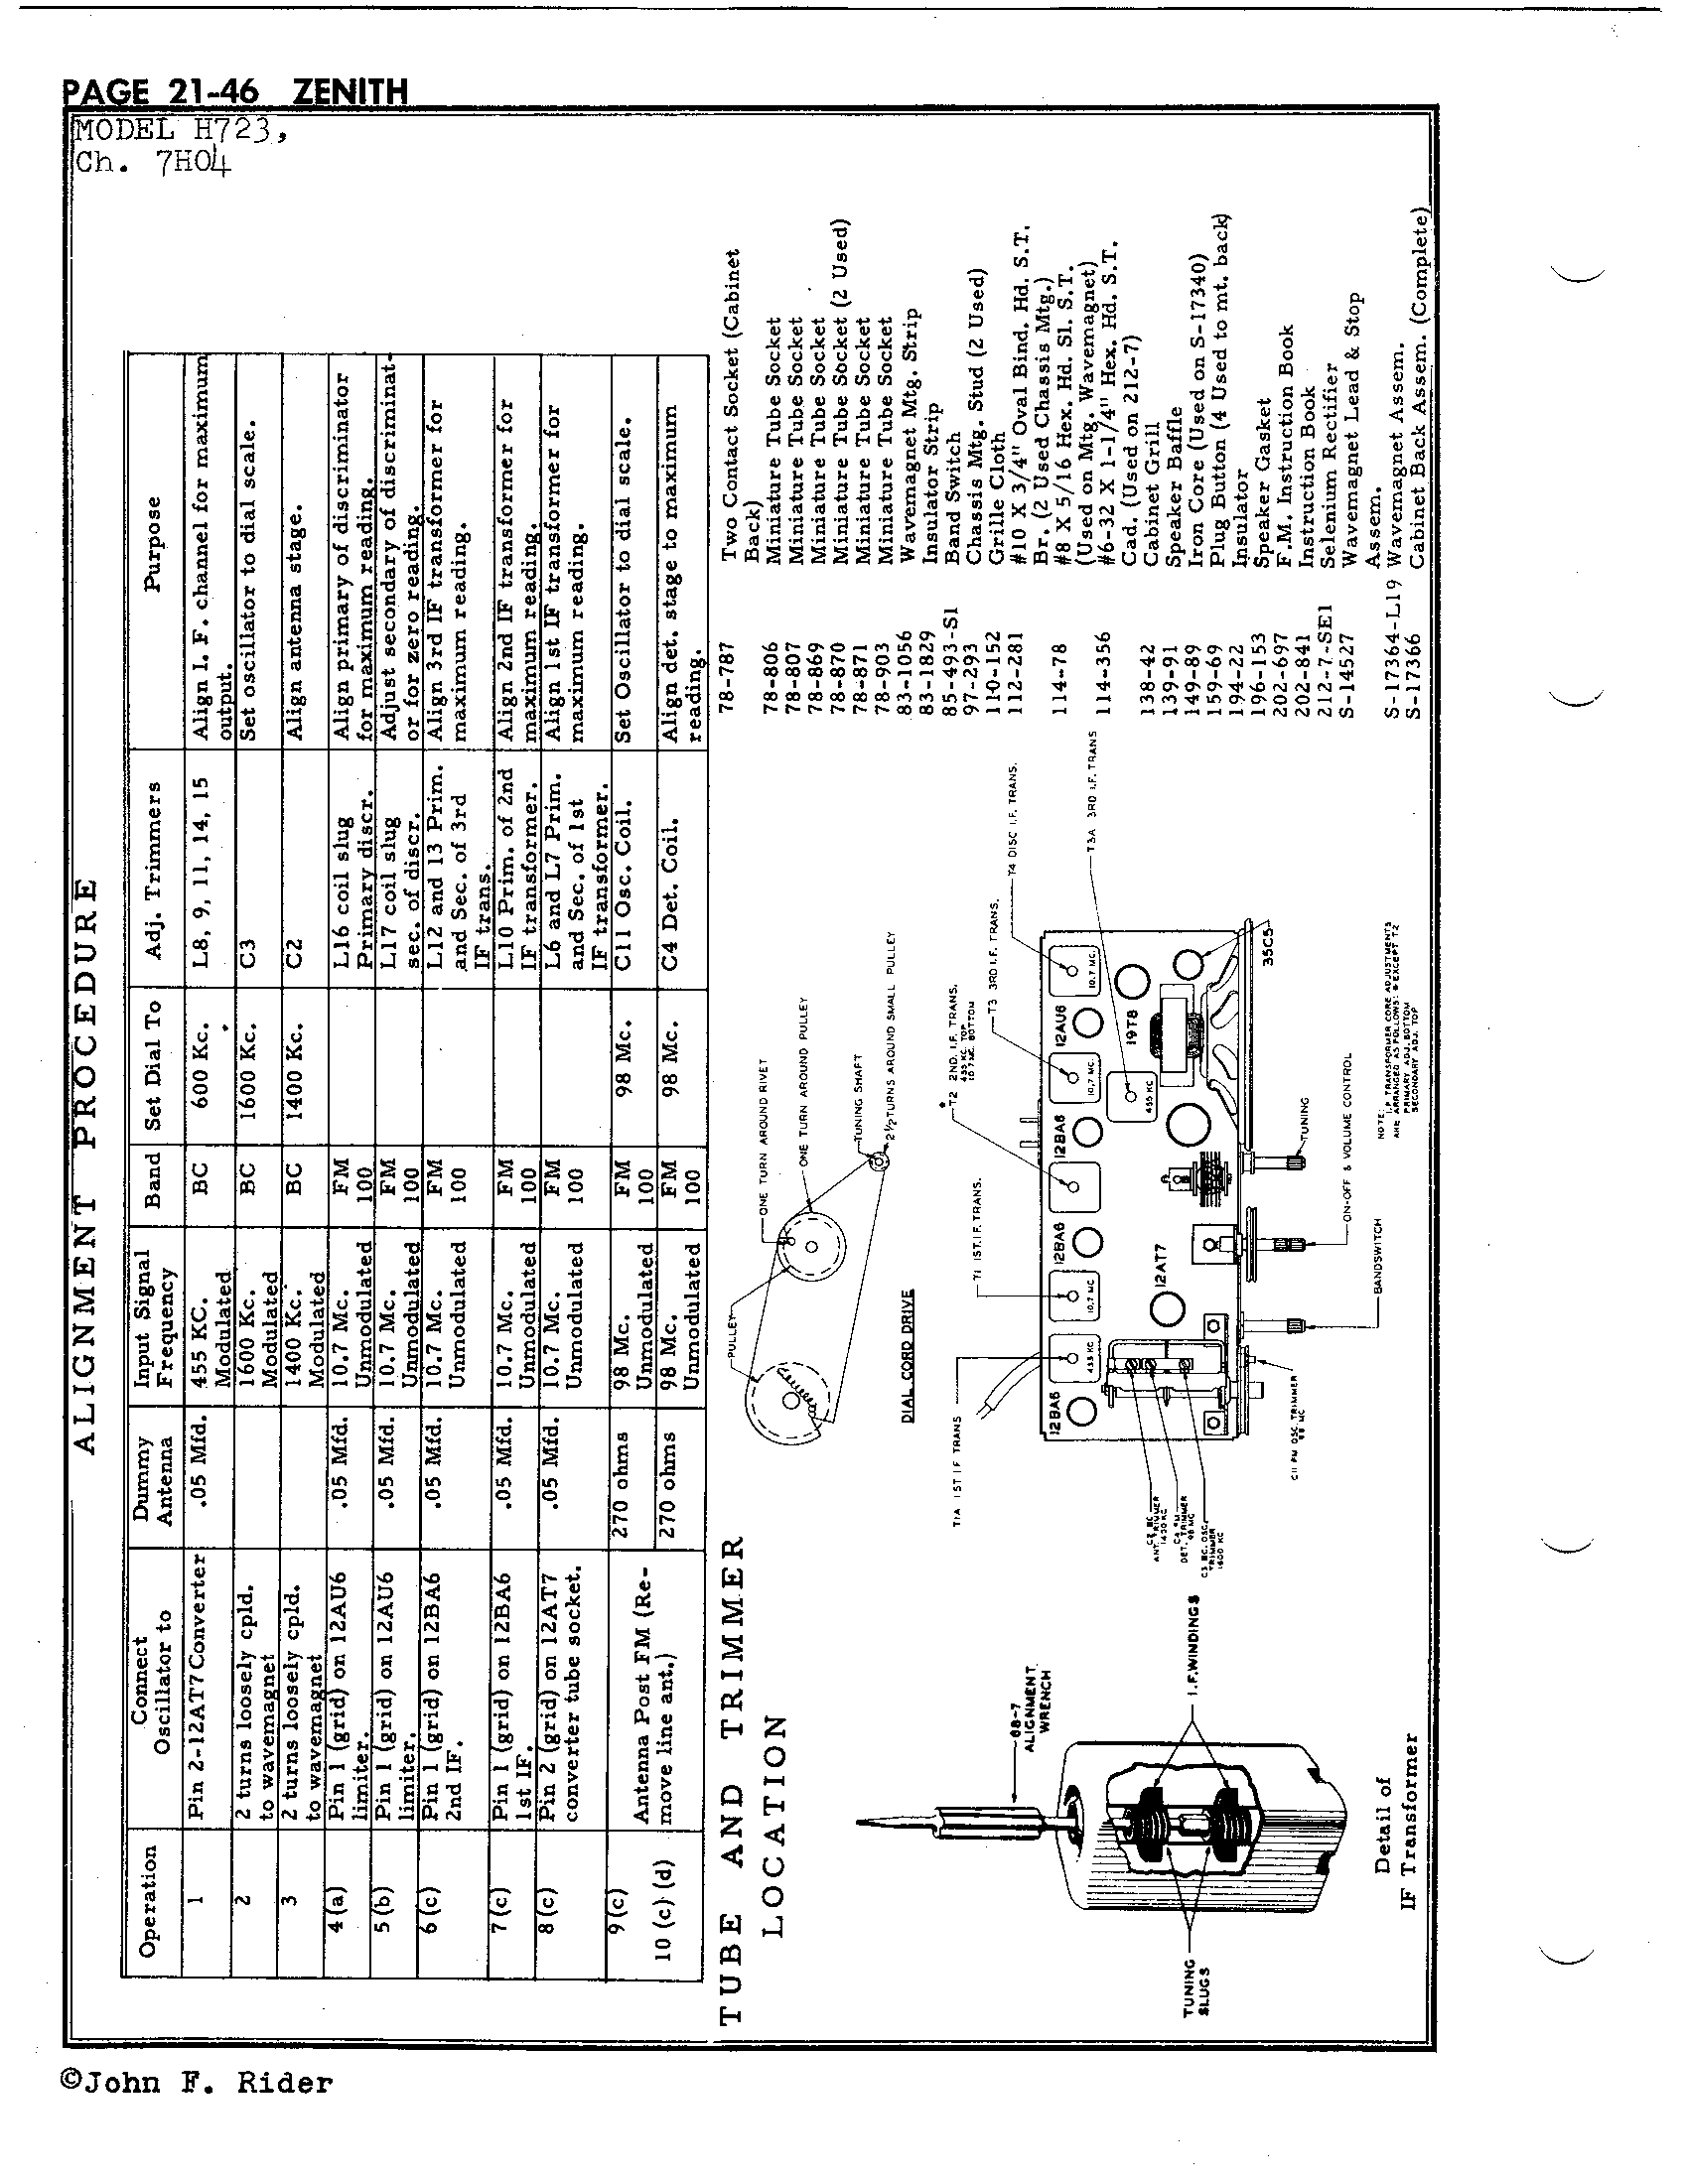 Watt Stereo Power Lifier Schematic Circuit Wiring Diagrams on Home Theater Speaker Wiring Diagrams